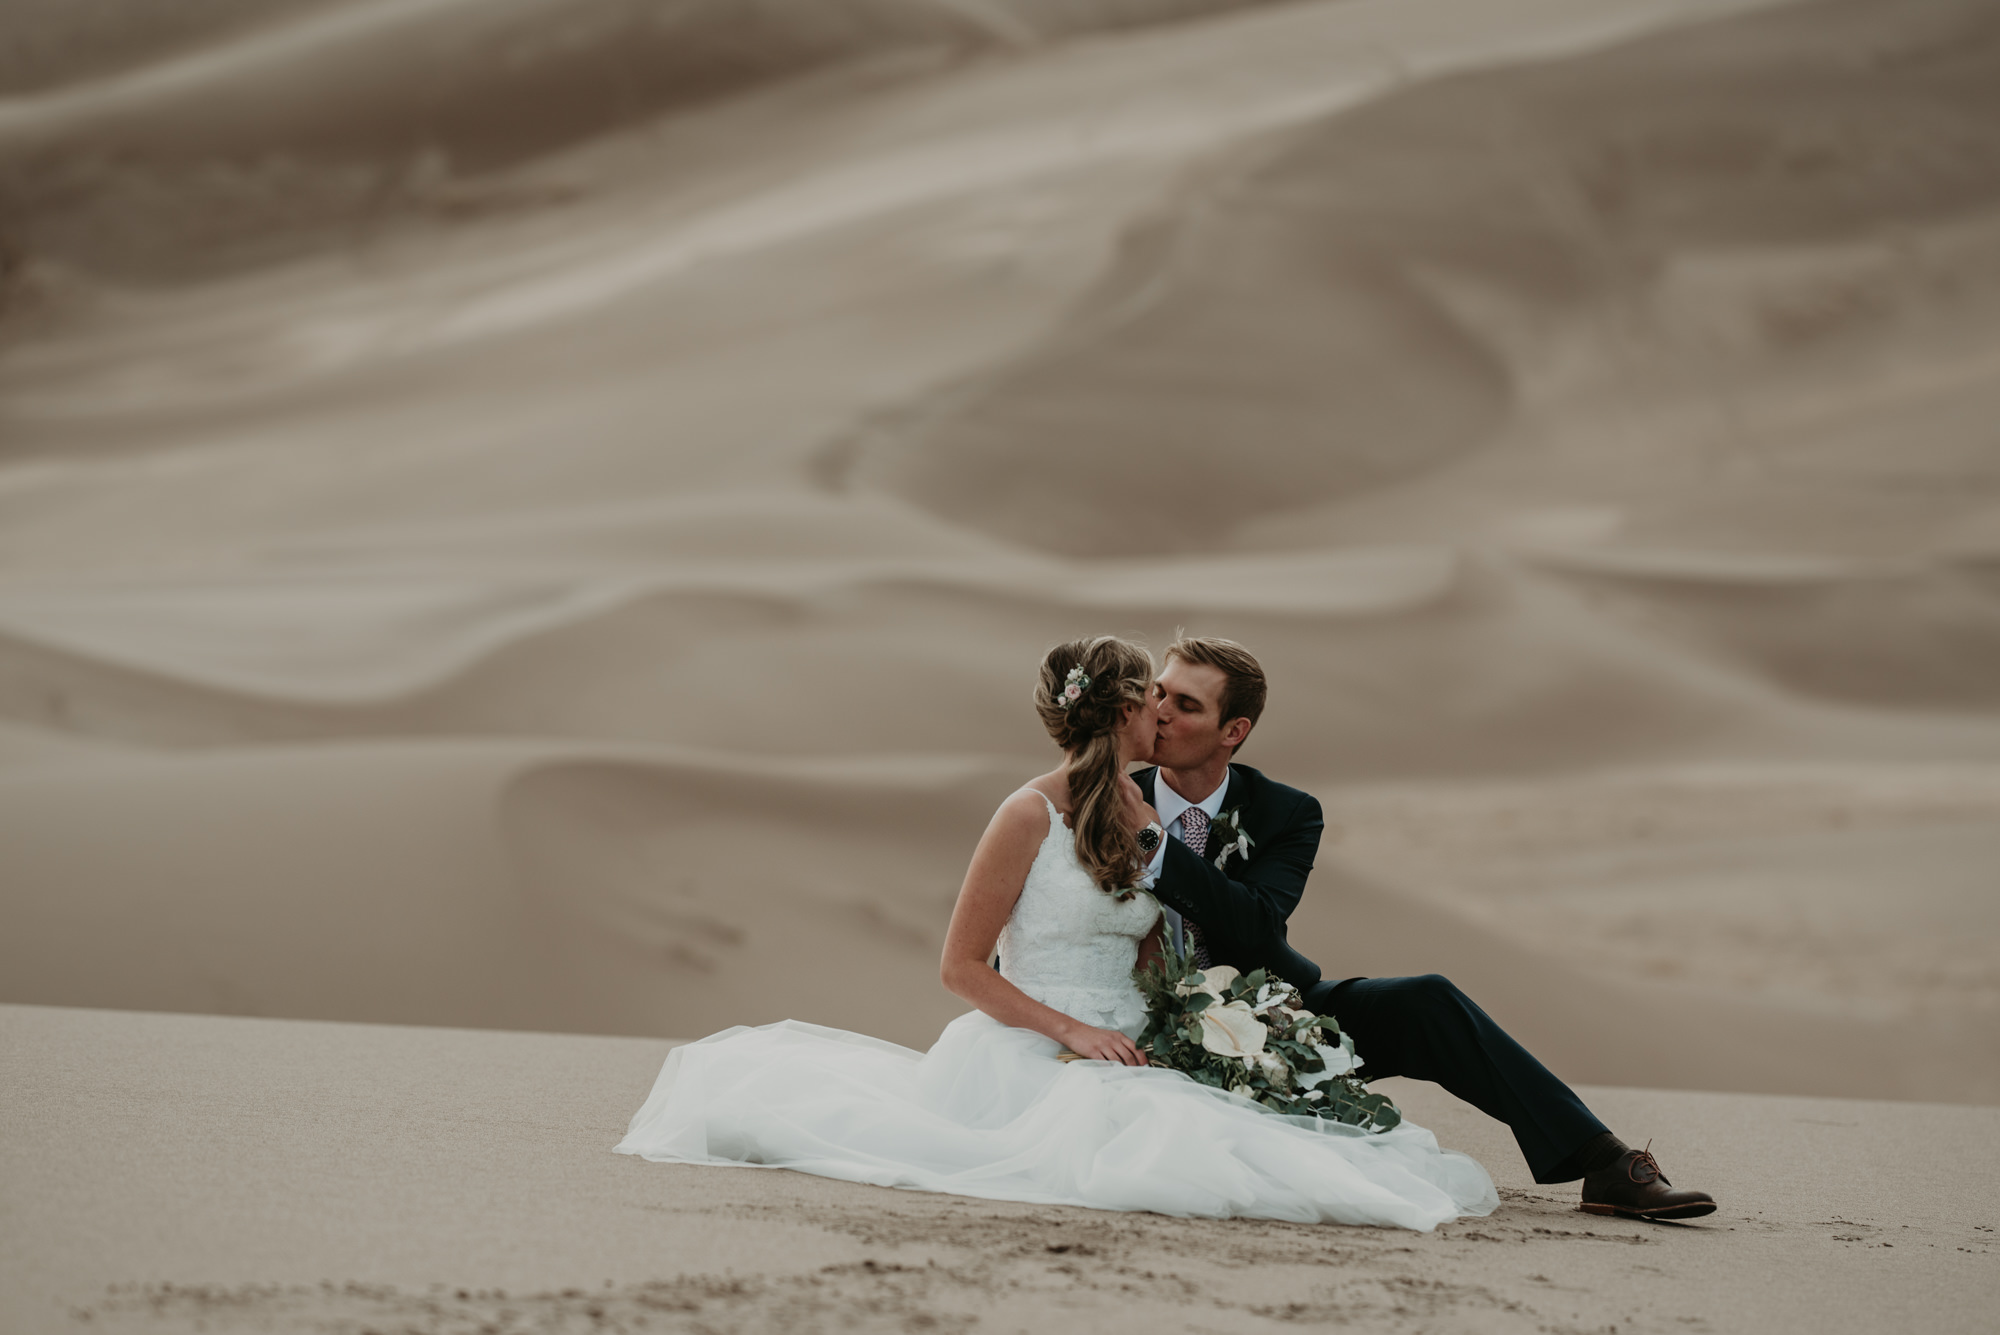 The bride and groom share a kiss on the sand dunes.